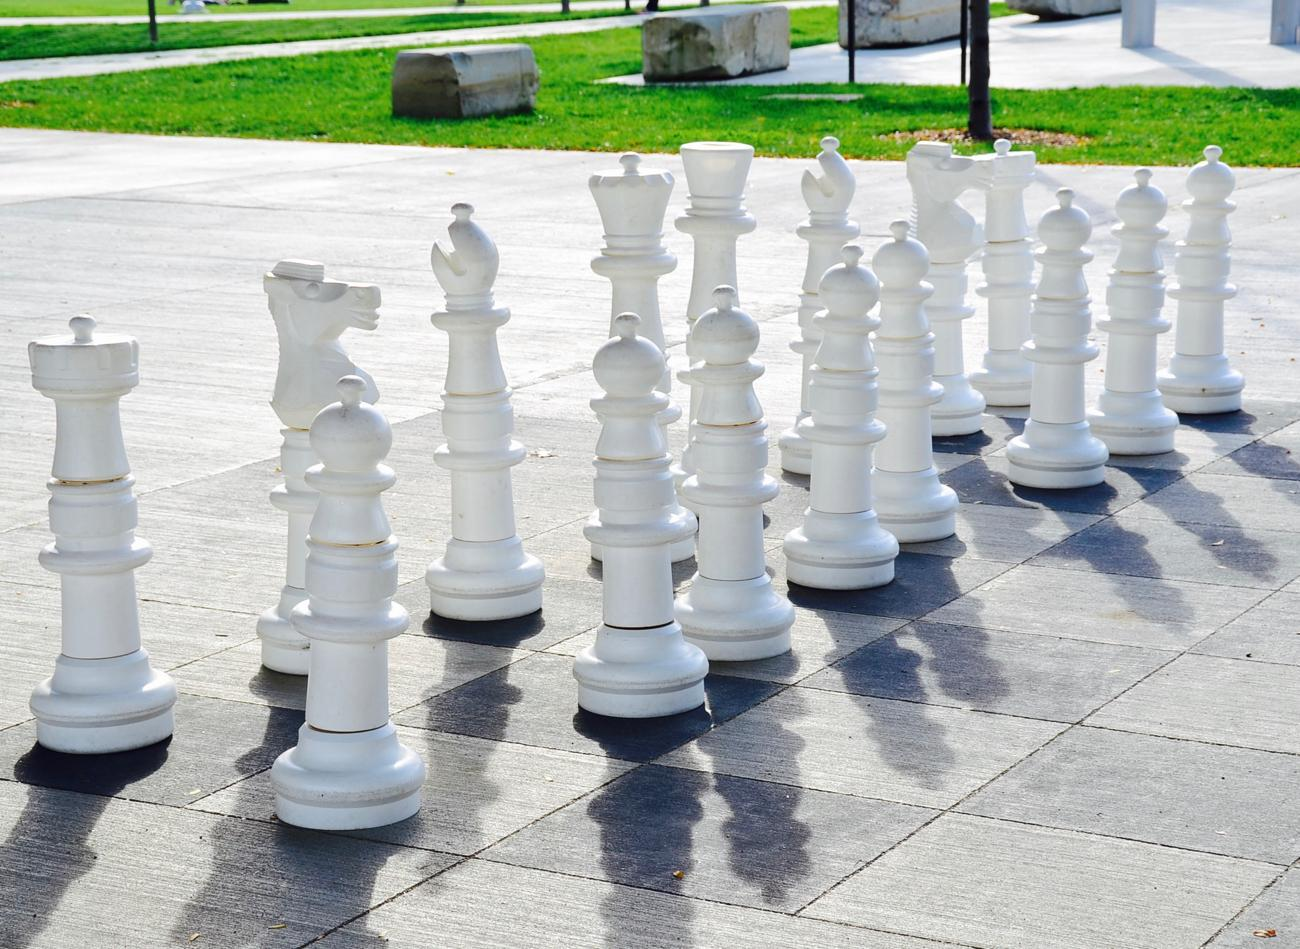 Life-size chess under the Roebling Bridge / Image: Leah Zipperstein, Cincinnati Refined // Published: 10.31.17